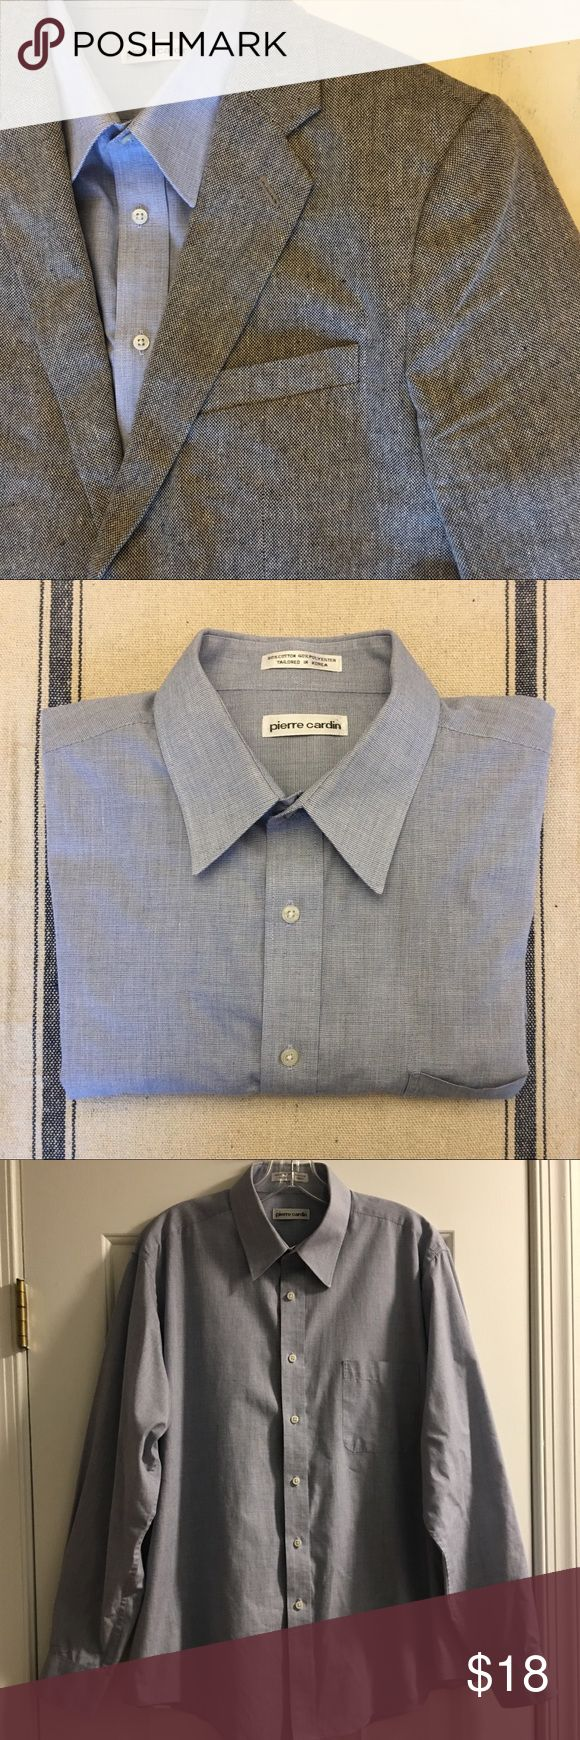 Pierre Cardin Light Blue Button Down Shirt! Pierre Cardin Light Blue Button Down Shirt! Great condition! Size 16 1/2, 34/35. Goes great with suits, blazers, and sports coats! Comment with questions! Bundle and save! Like this listing for a private price drop offer! Pierre Cardin Shirts Casual Button Down Shirts